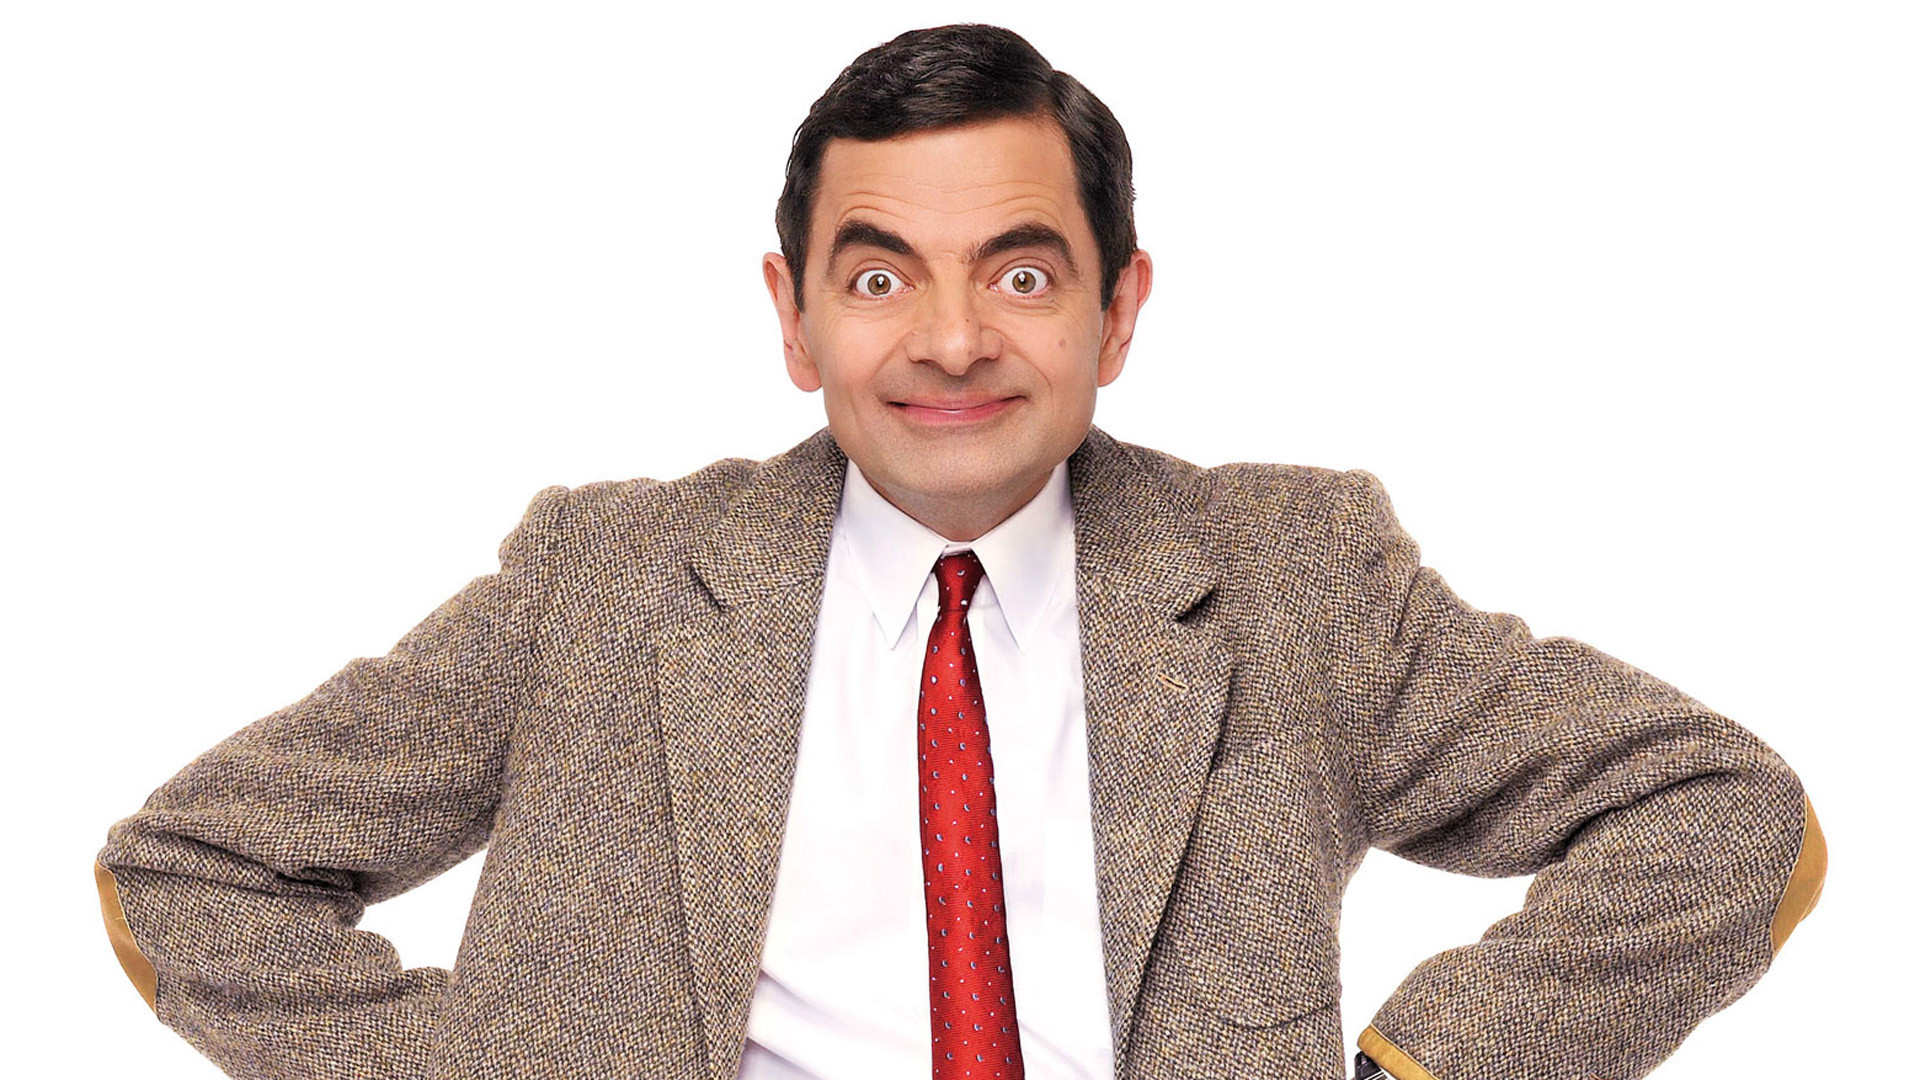 Rowan Atkinson as Bean 1294.78 Kb